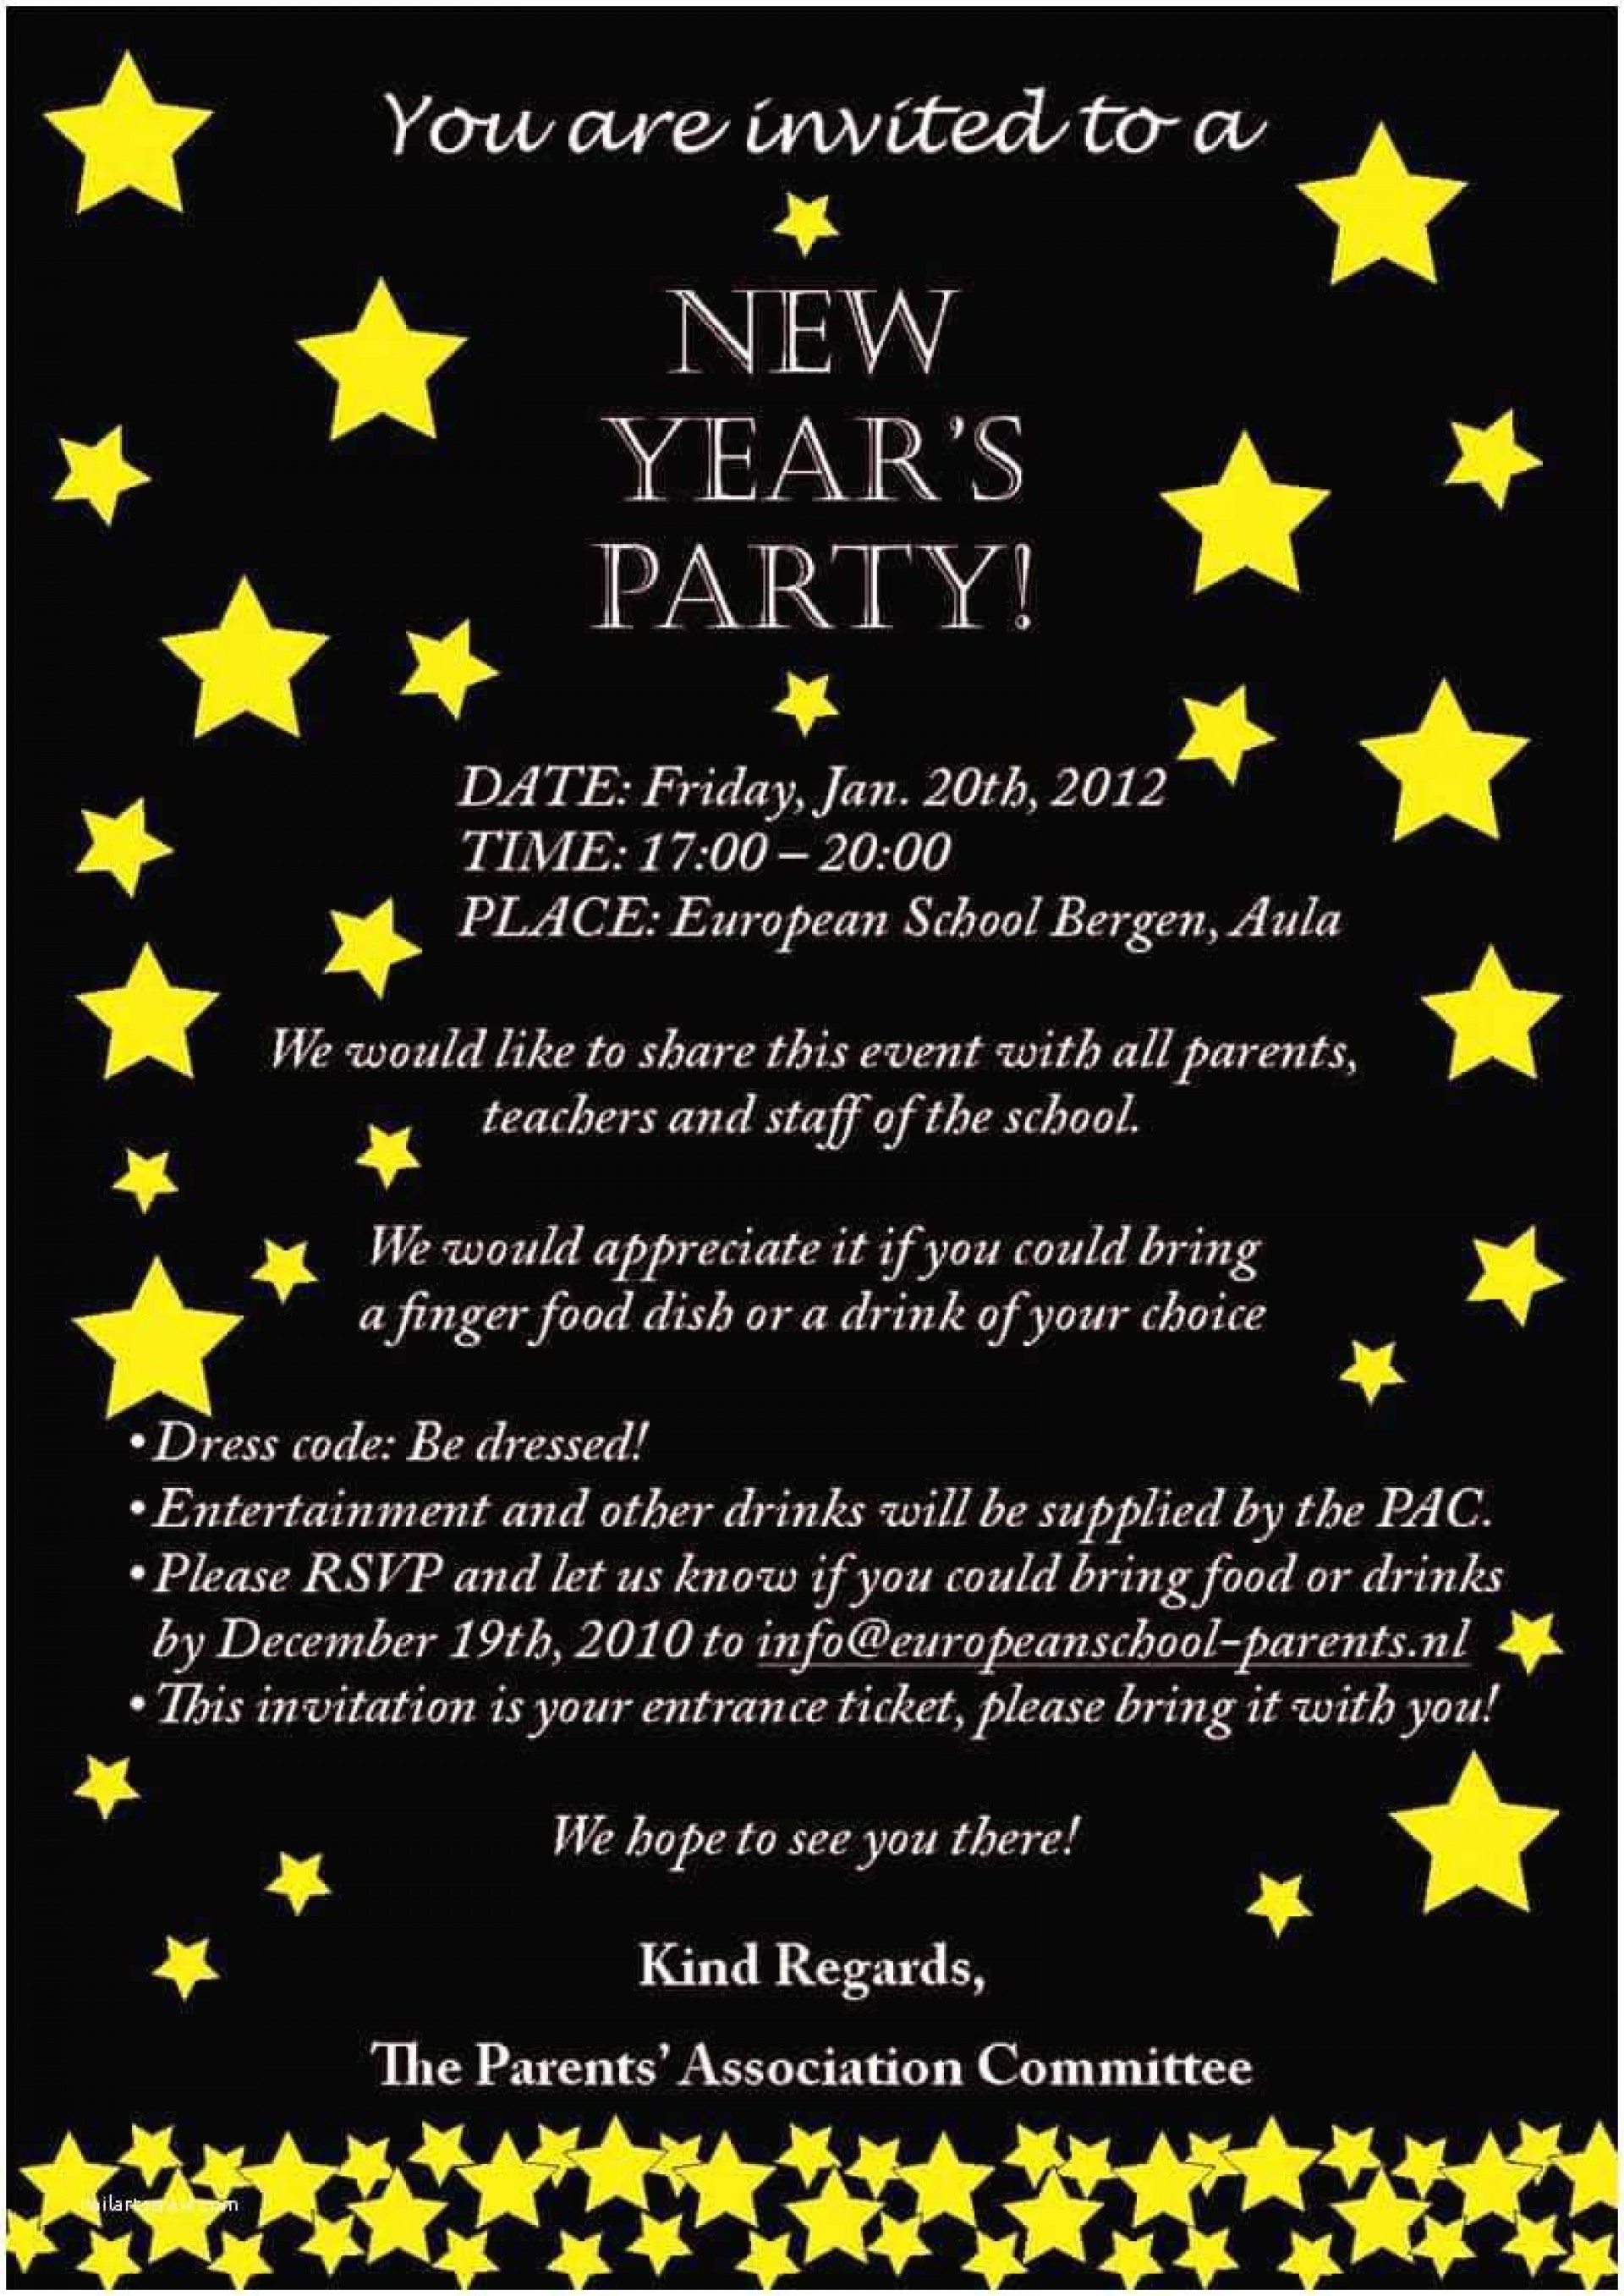 007 Unusual New Year Eve Invitation Template Highest Clarity  Party Free Word1920